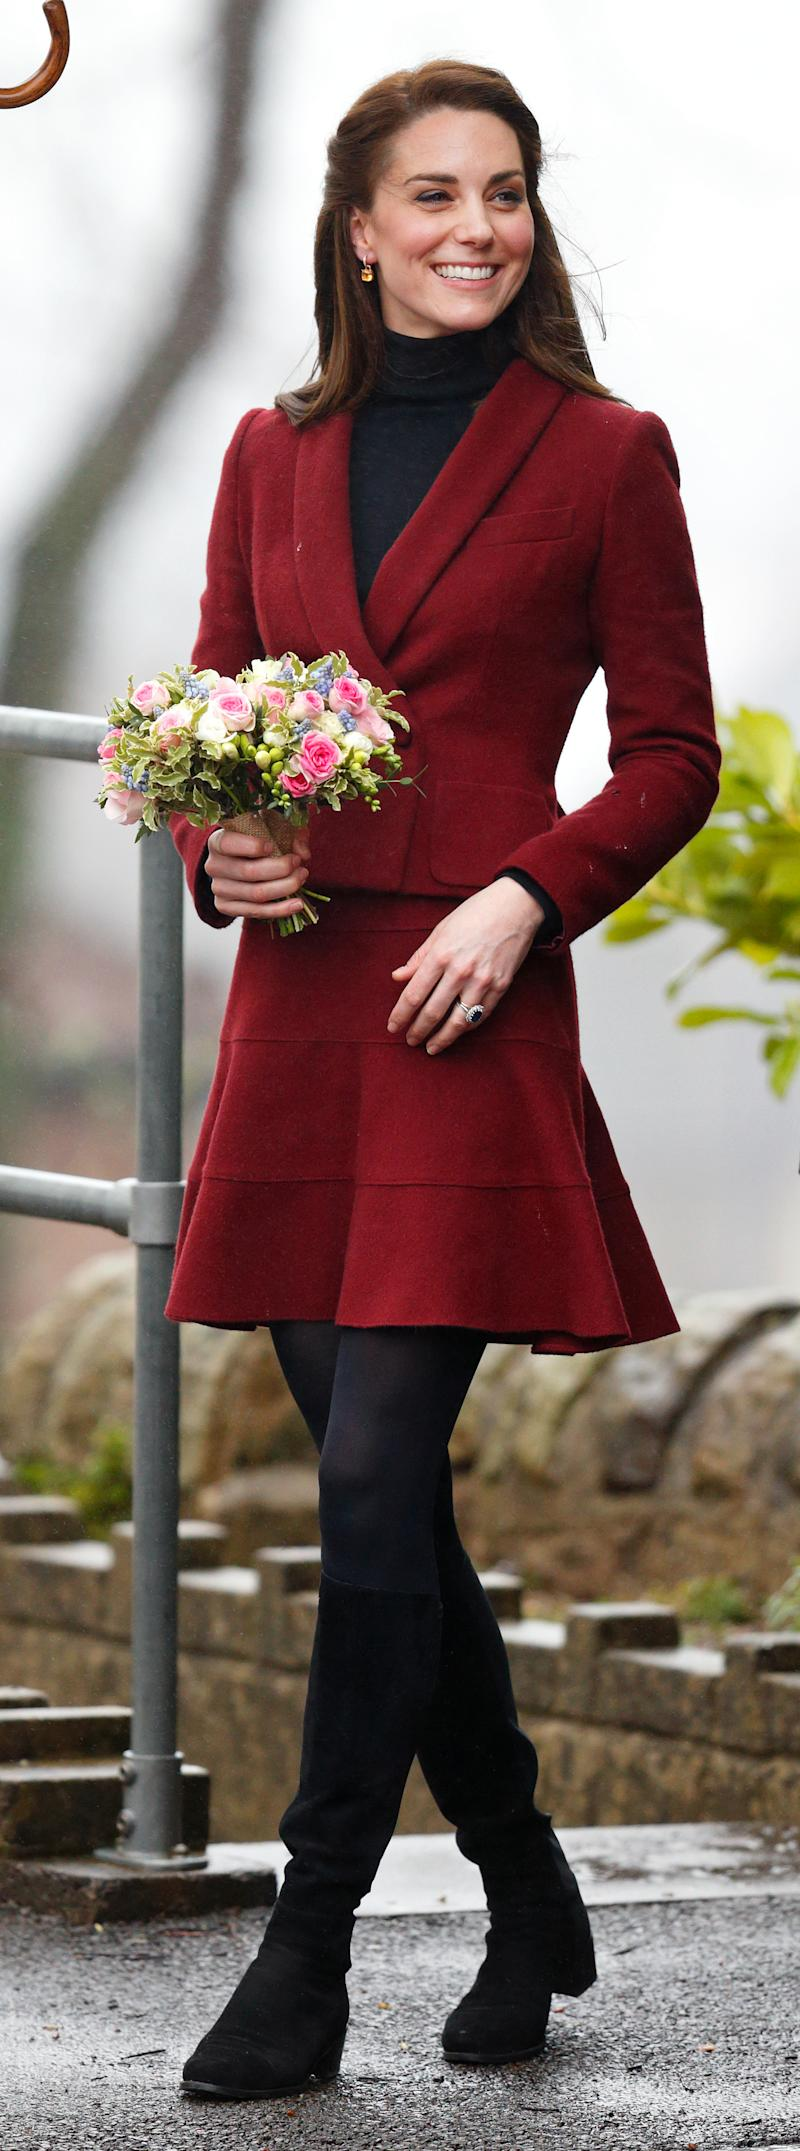 Dream Job as Kate Middleton's Private Secretary Now Available